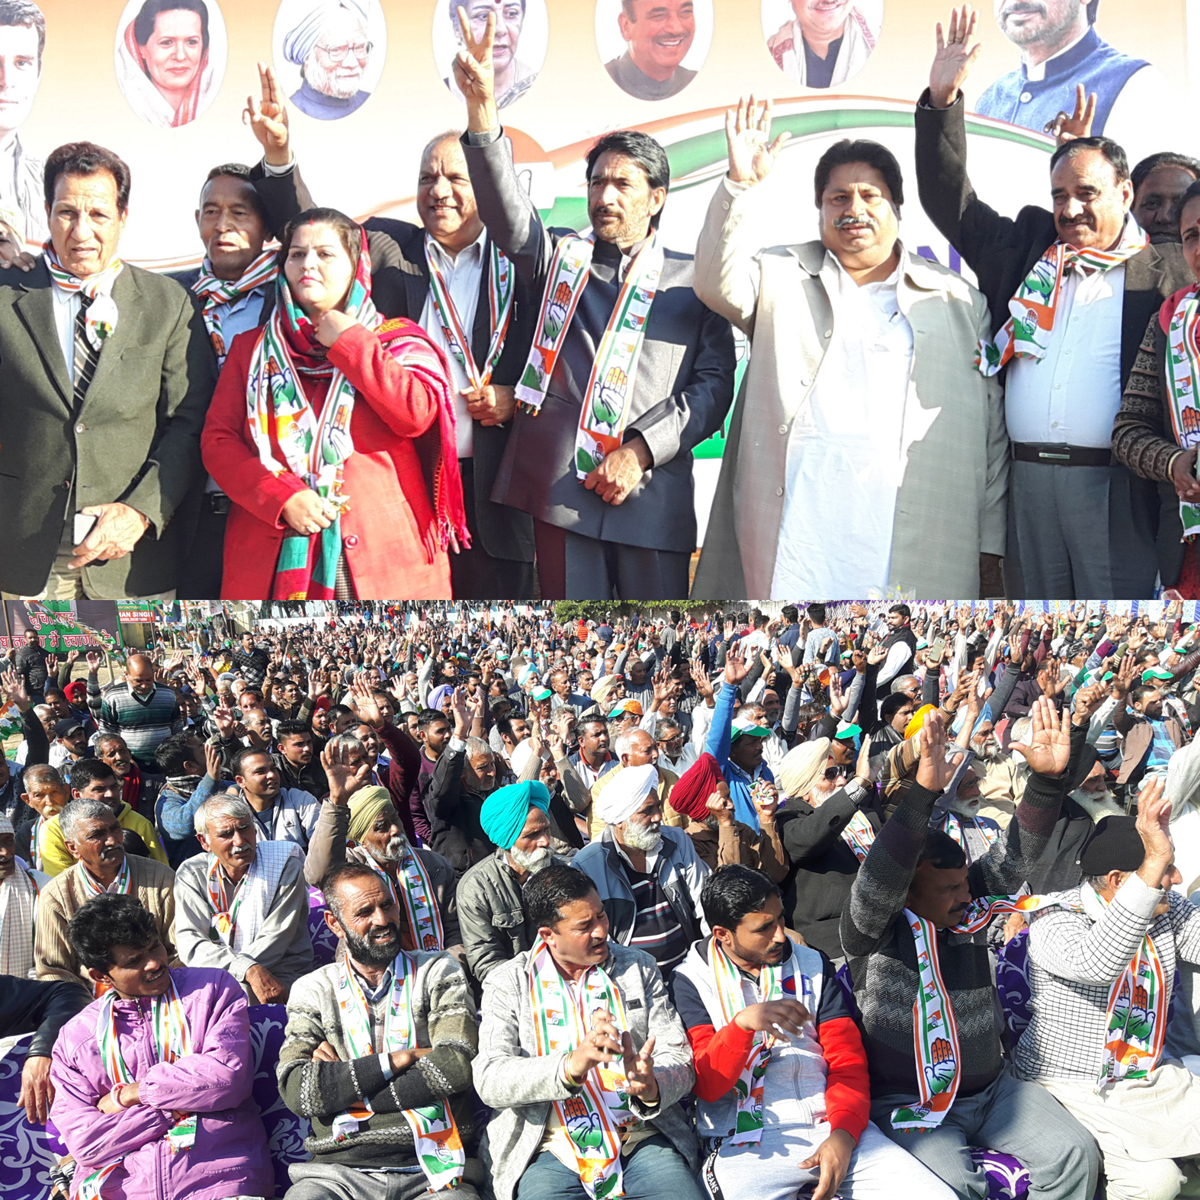 PCC chief G A Mir, AICC Secy Shakeel Khan, Raman Bhalla, R S Chib and others at Cong convention in Suchetgarh on Sunday.